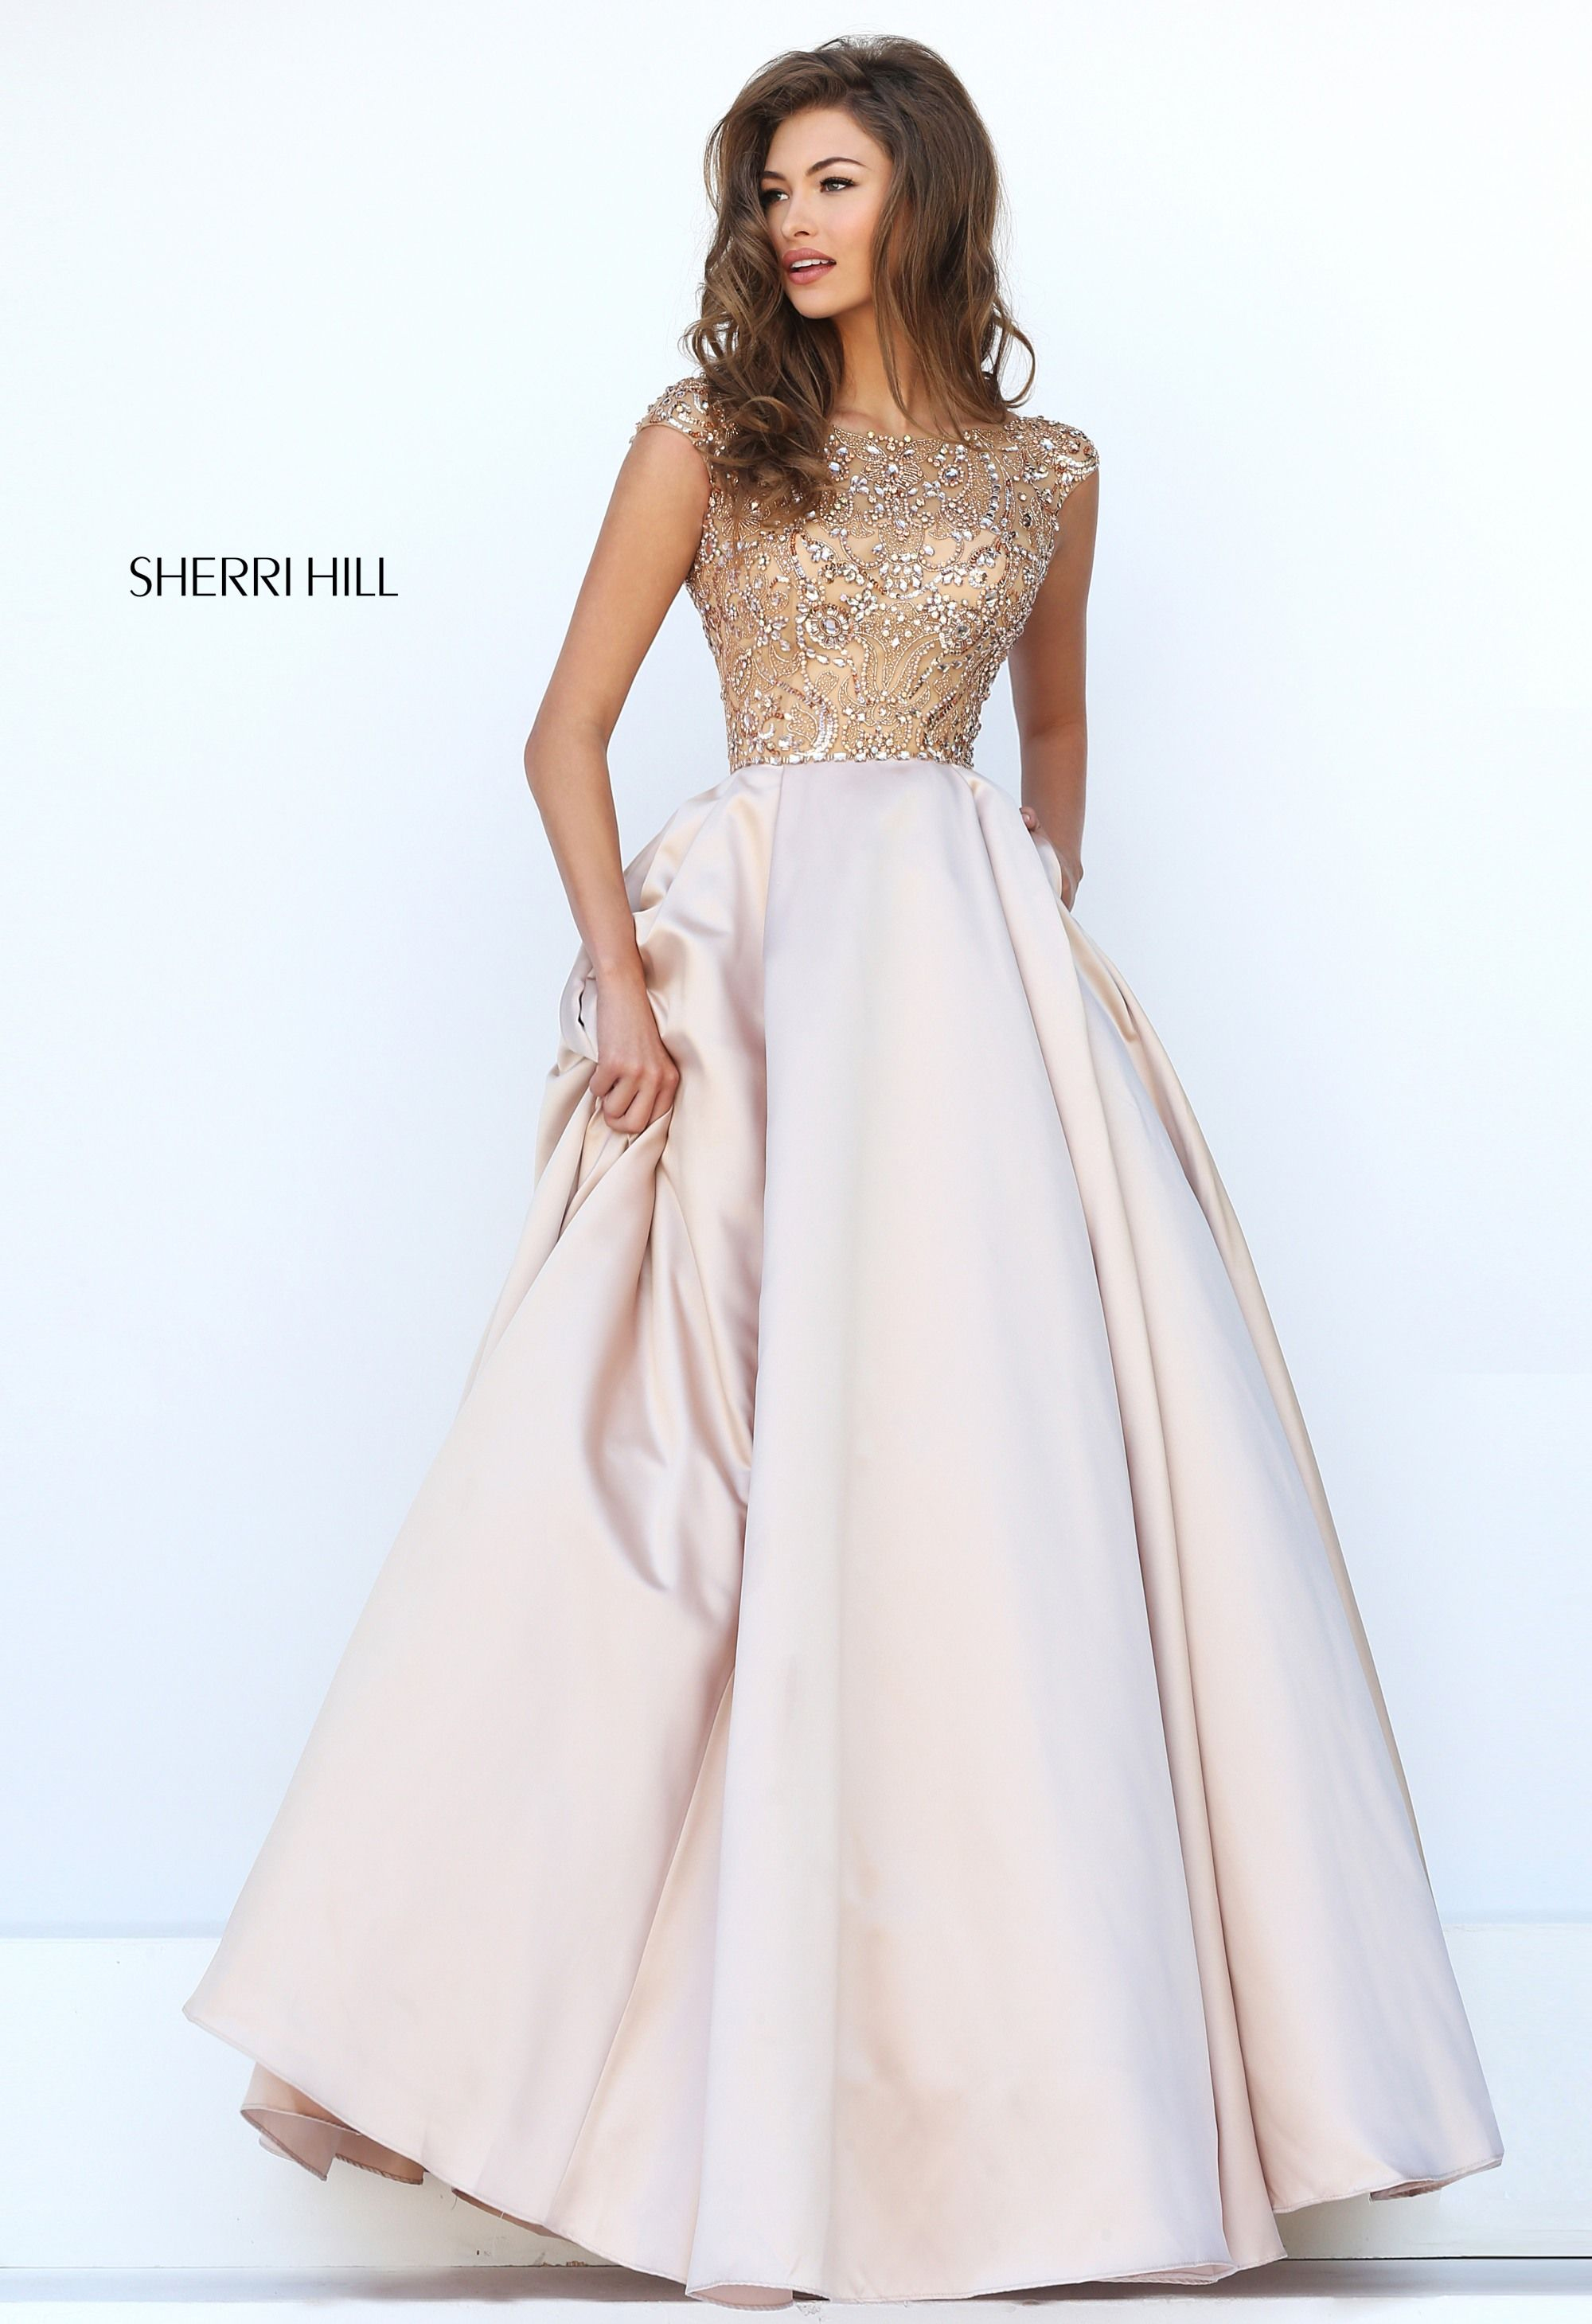 520490620e2 Sherri Hill 32359 Nude Ballgown Beaded Bodice Ypsilon Dresses Prom Modest  Prom Sleeves Pockets Formal Formalwear